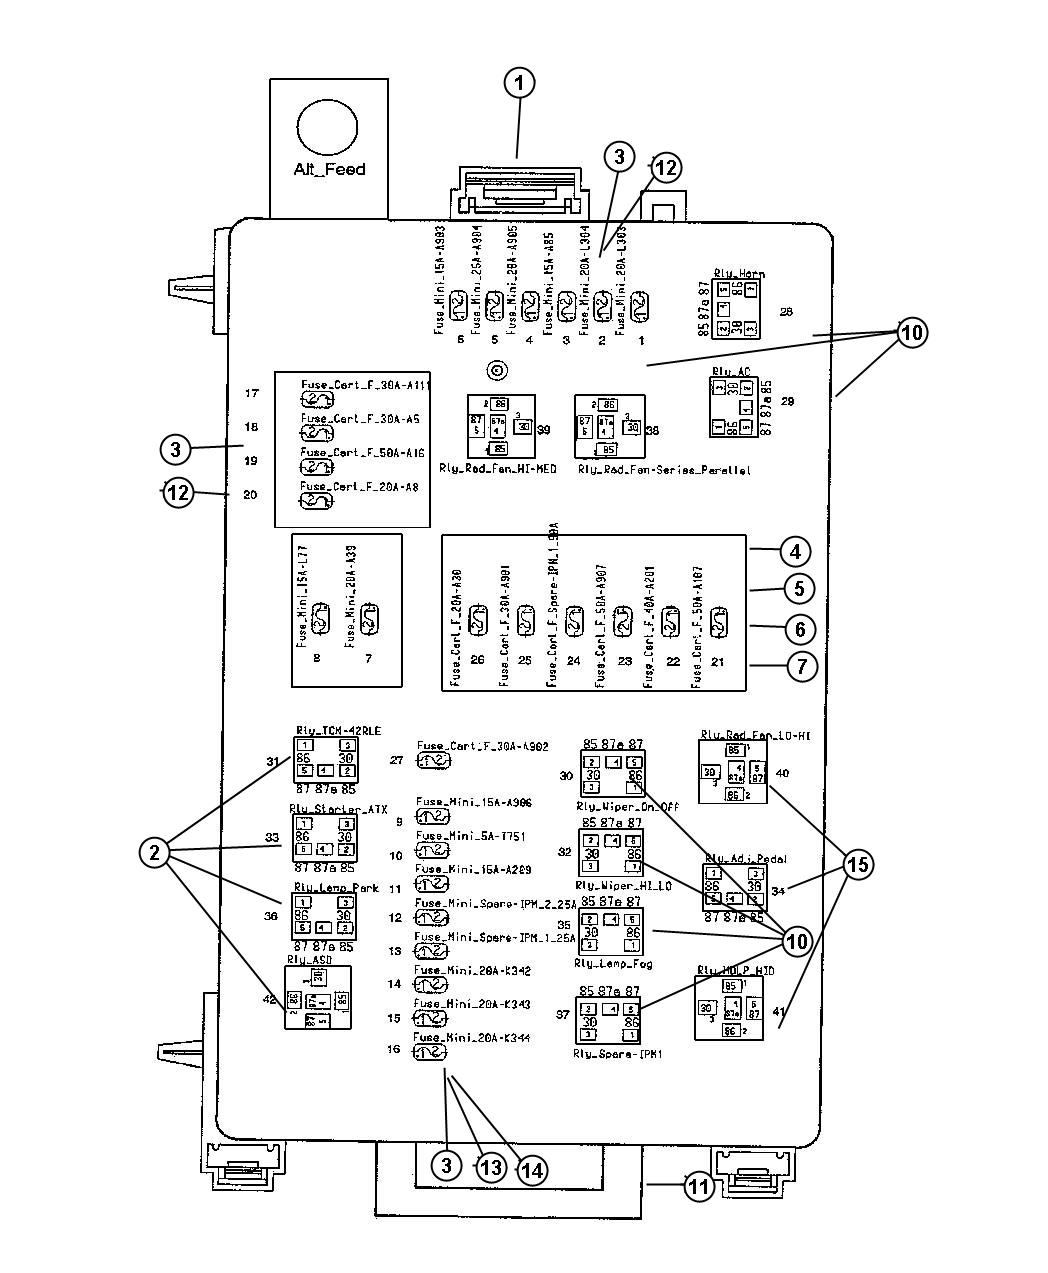 hight resolution of h3 fuse diagram wiring diagram article reviewfuse box diagram for 2005 dodge magnum advance wiring diagram05